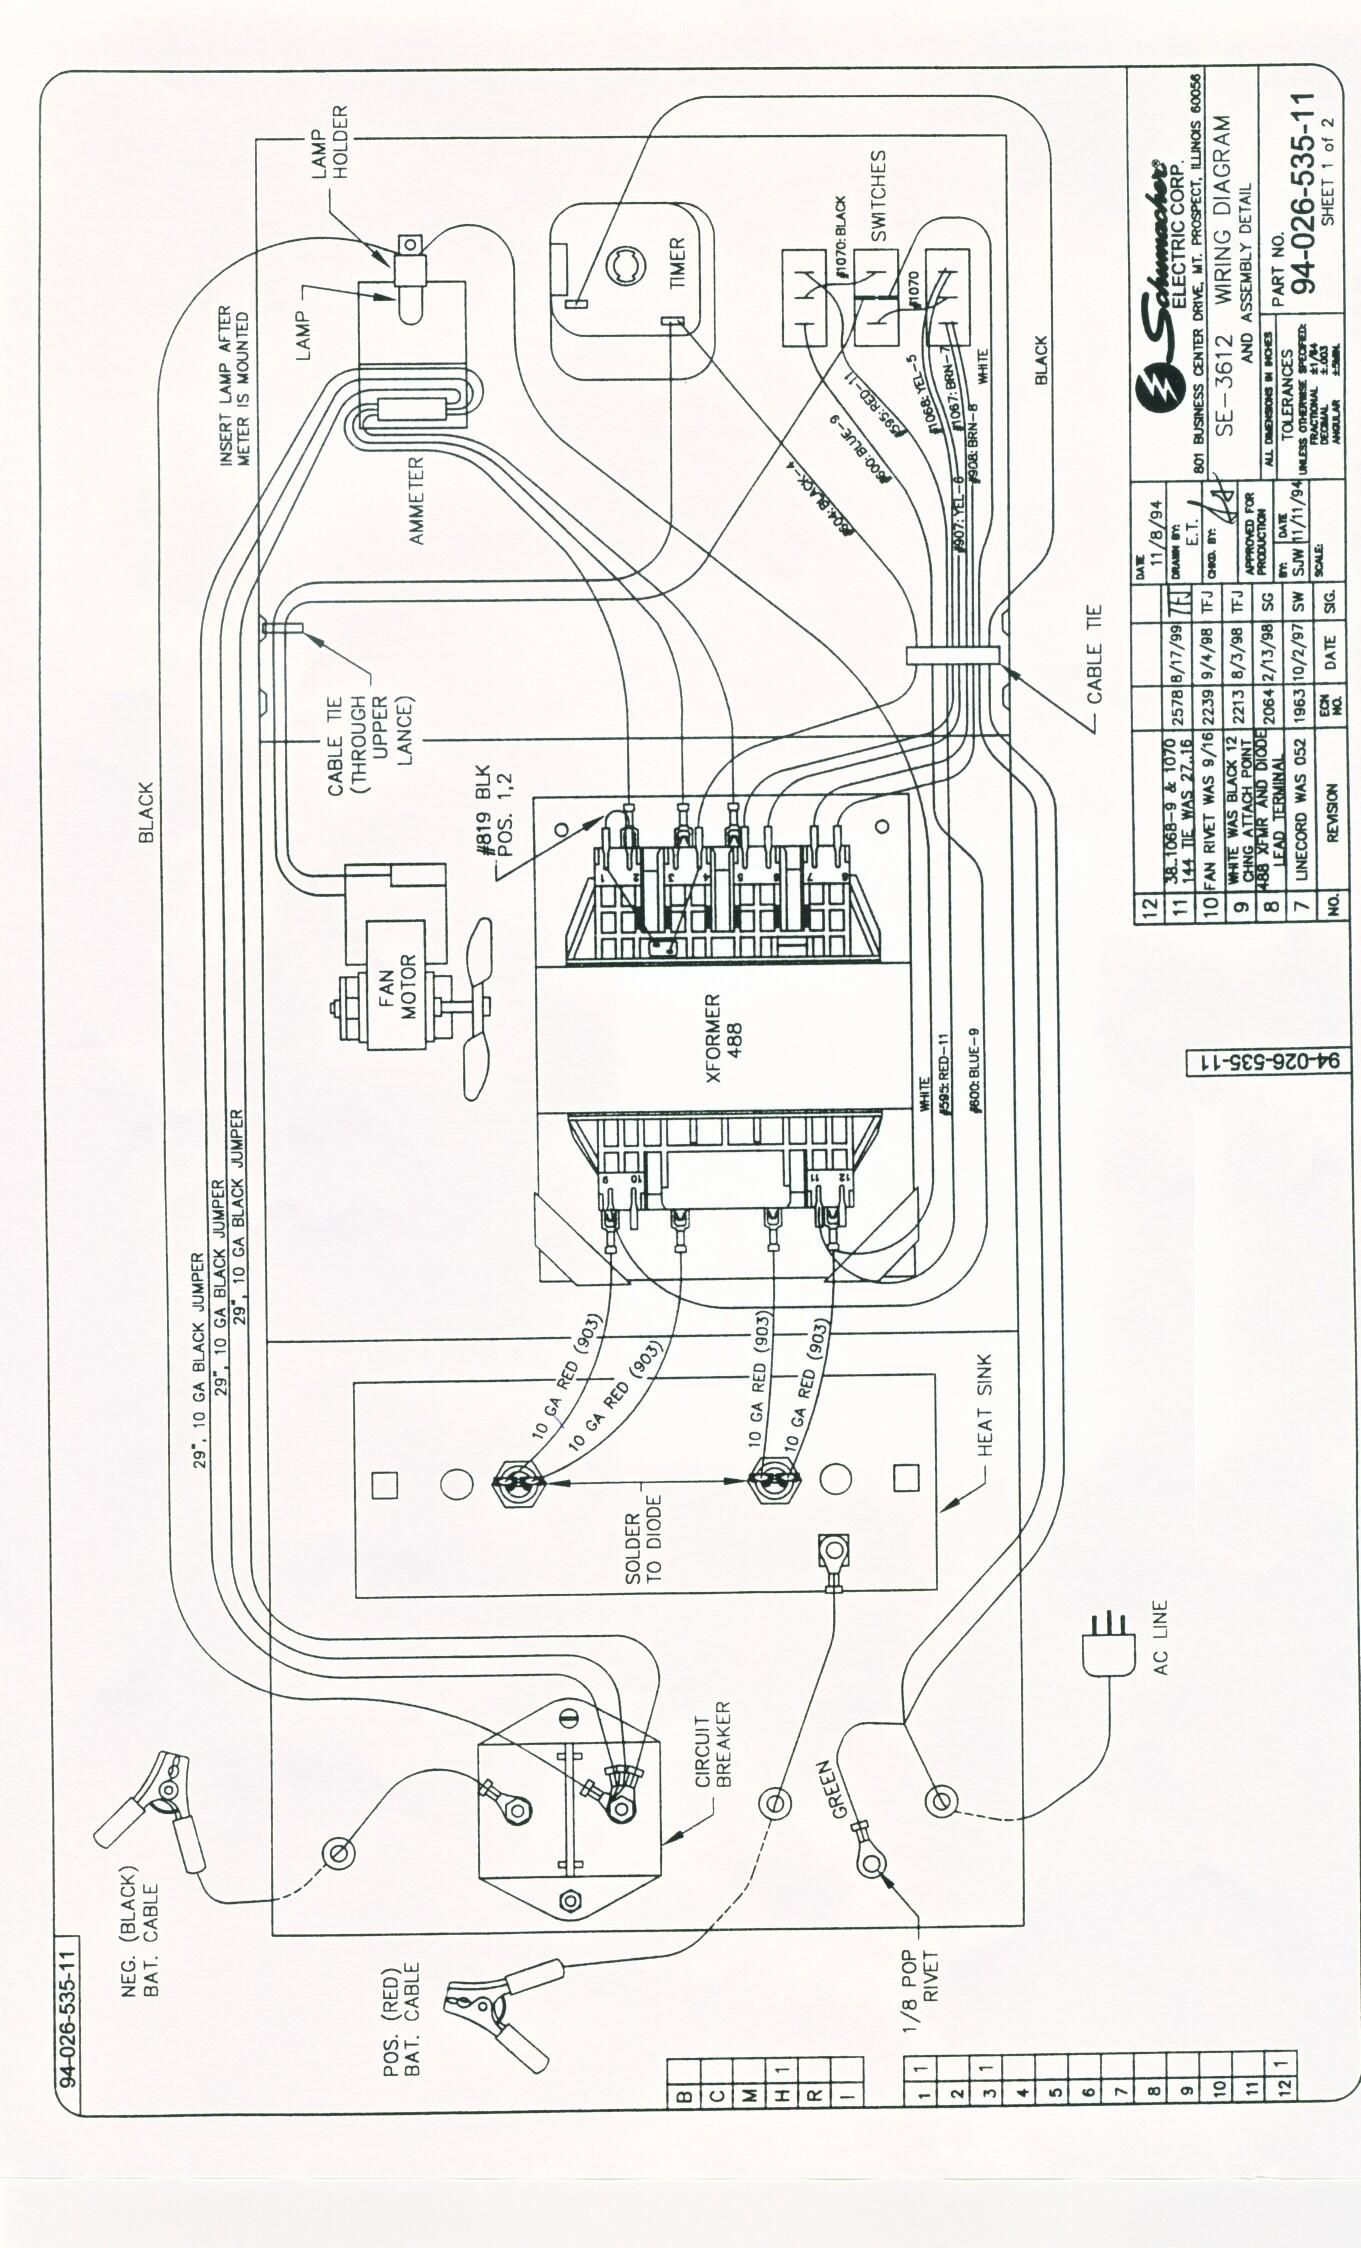 schumacher battery charger wiring diagram charger battery schumacher battery charger wiring diagram [ 1361 x 2248 Pixel ]